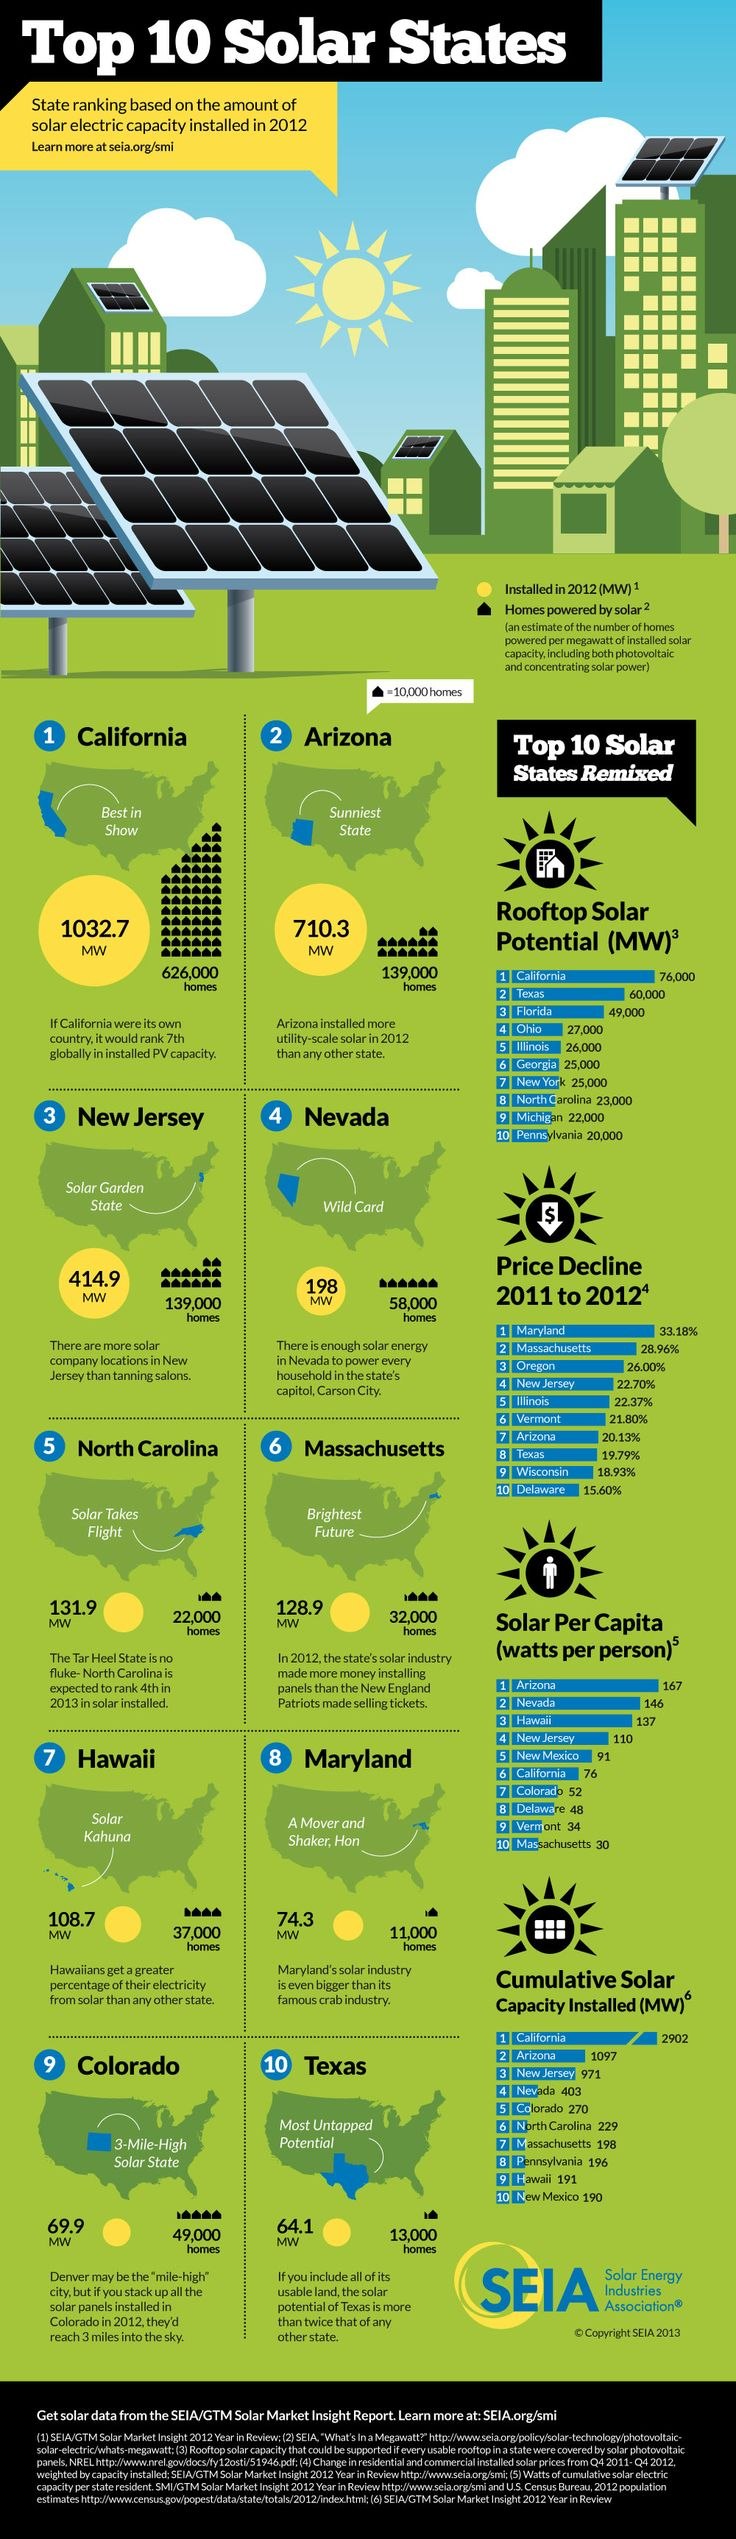 In 2012, the US solar industry installed 3.3 GW of solar capacity, growing 76% over 2011, and bringing the US to 7.7 GW total! What happened in your state? Our #Solar Insight 2012 Year in Review #Infographic